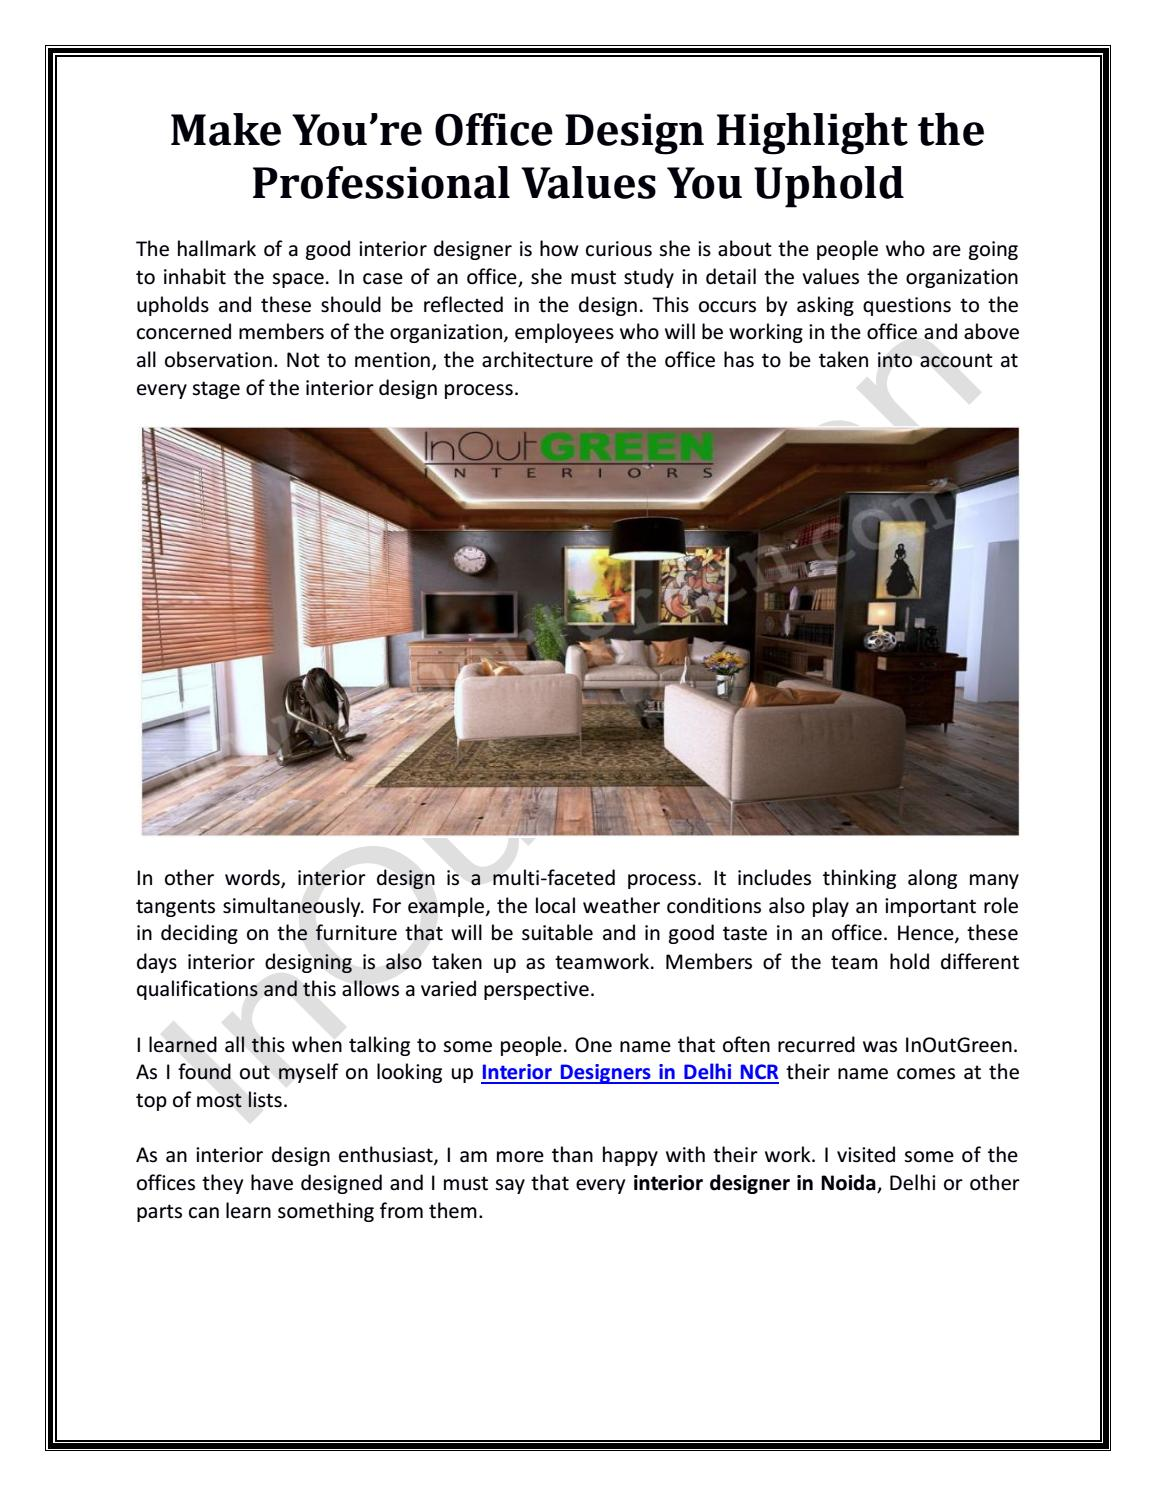 Make You Re Office Design Highlight The Professional Values You Uphold By Kanika Kaur Issuu